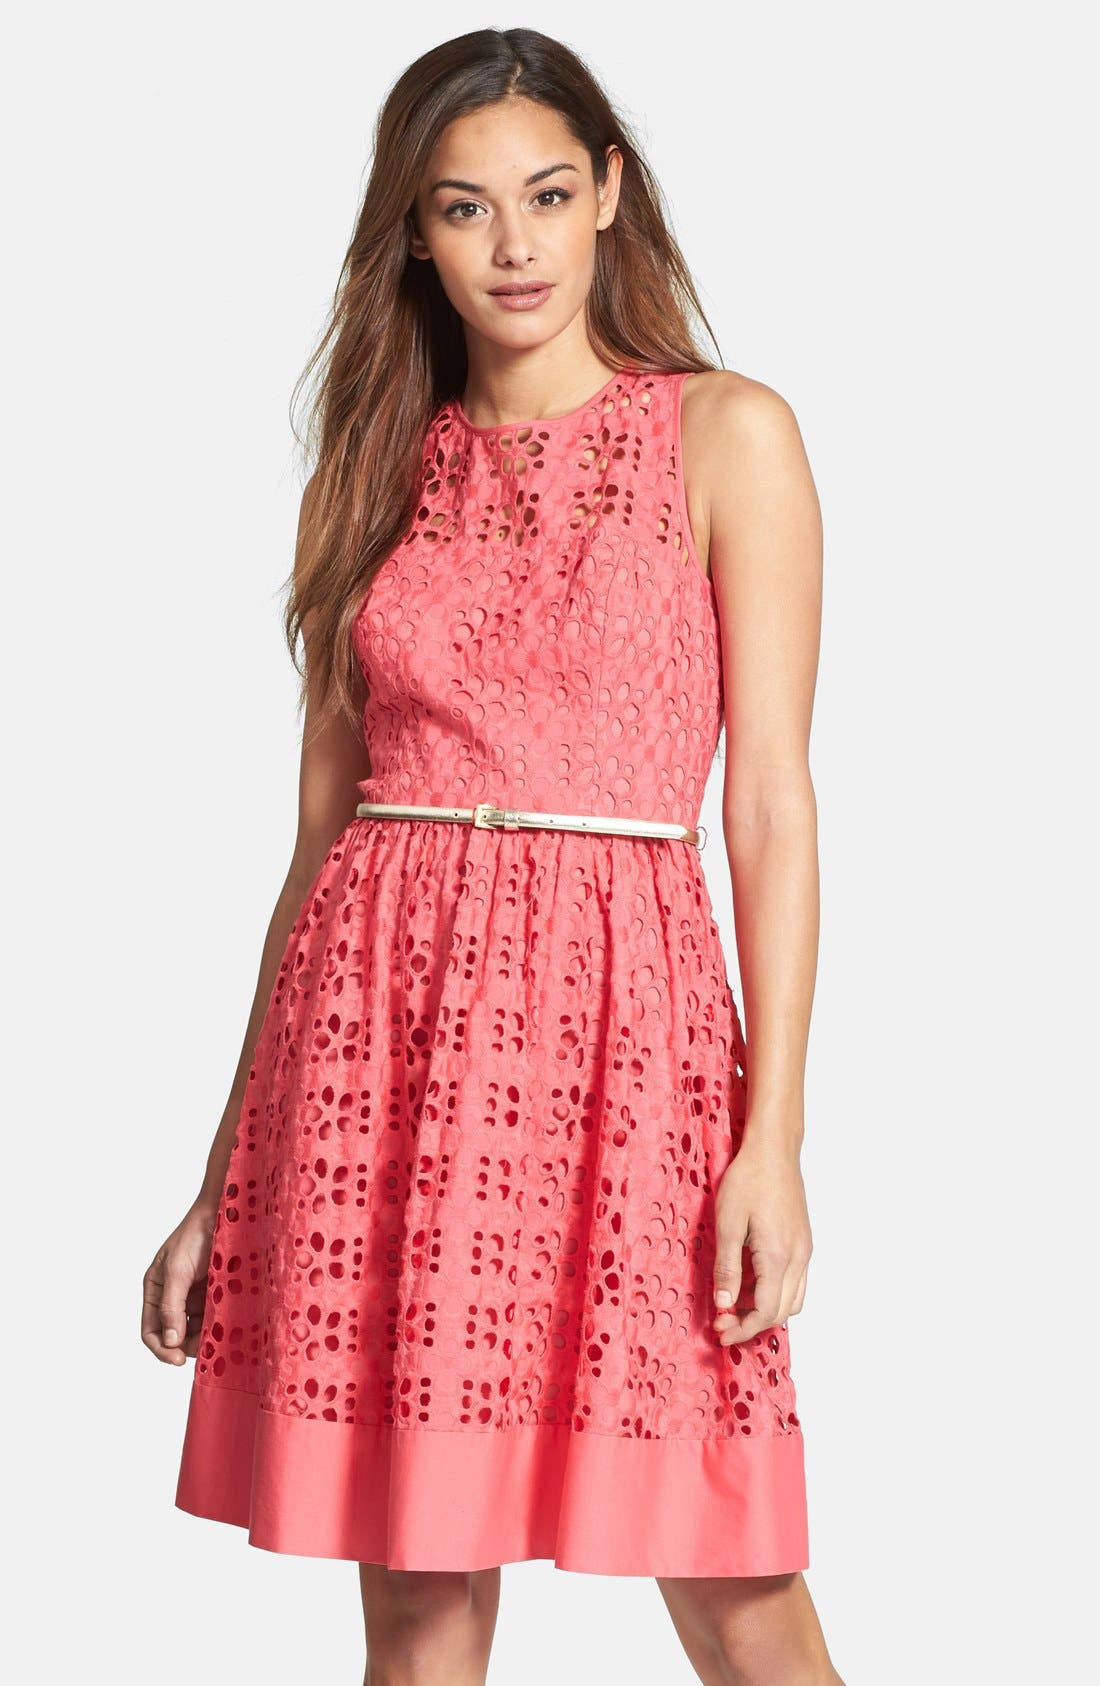 Main Image - Eliza J Cotton Eyelet Belted Fit & Flare Dress (Regular & Petite)